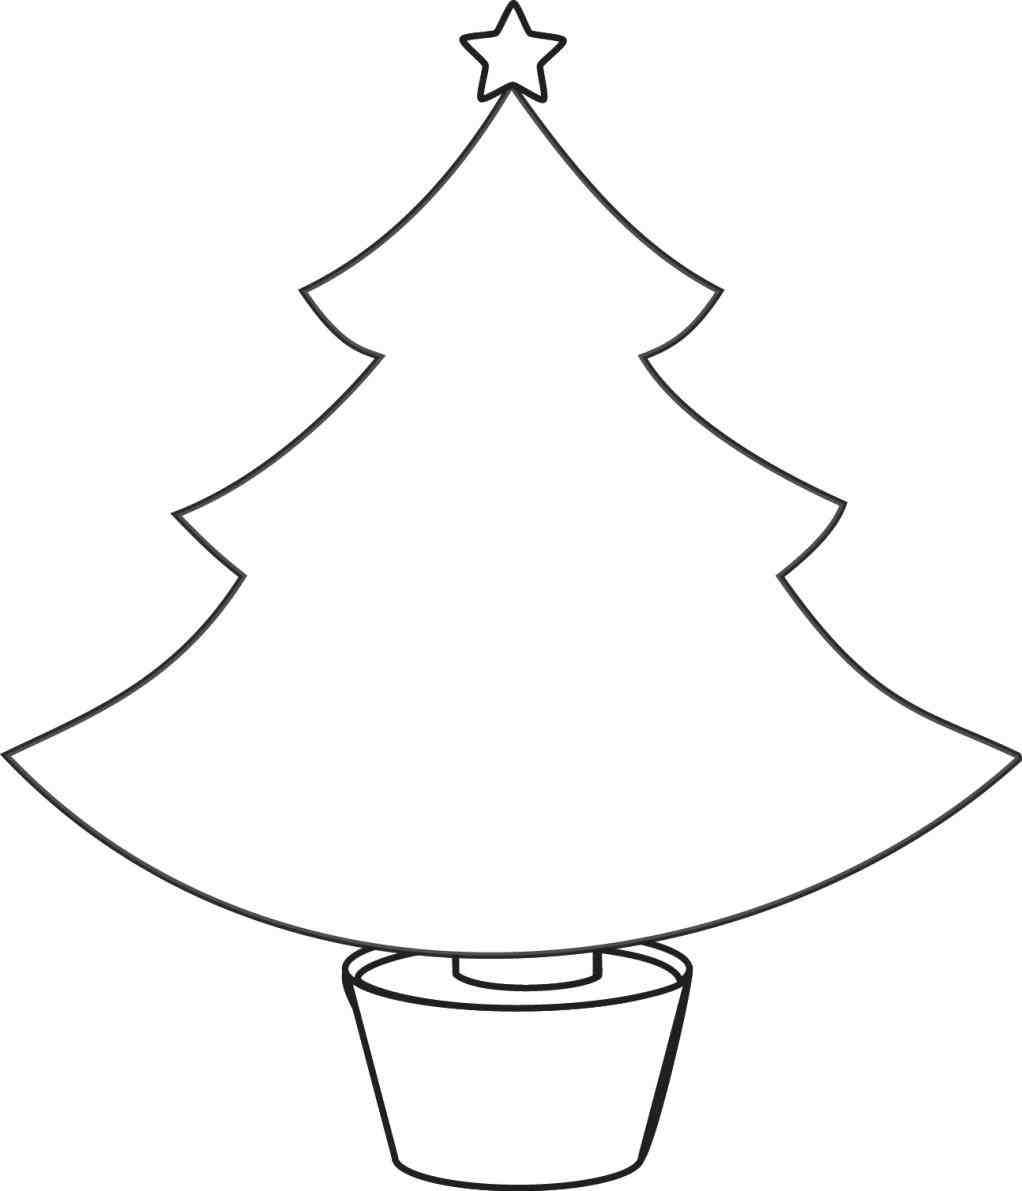 Simple Tree Template - ClipArt Best